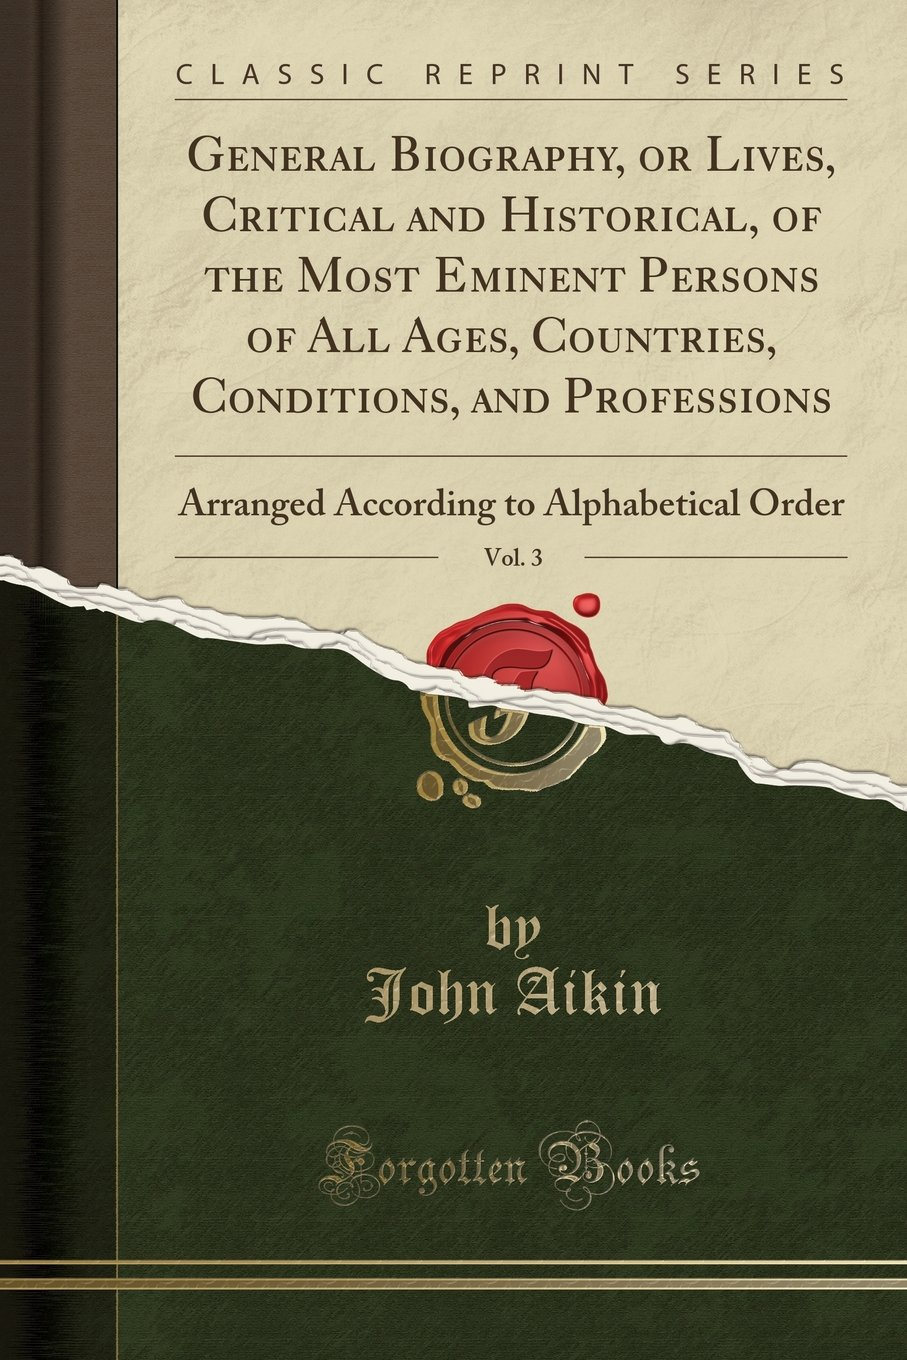 General Biography, or Lives, Critical and Historical, of the Most Eminent Persons of All Ages, Countries, Conditions, and Professions, Vol. 3: ... to Alphabetical Order (Classic Reprint) PDF